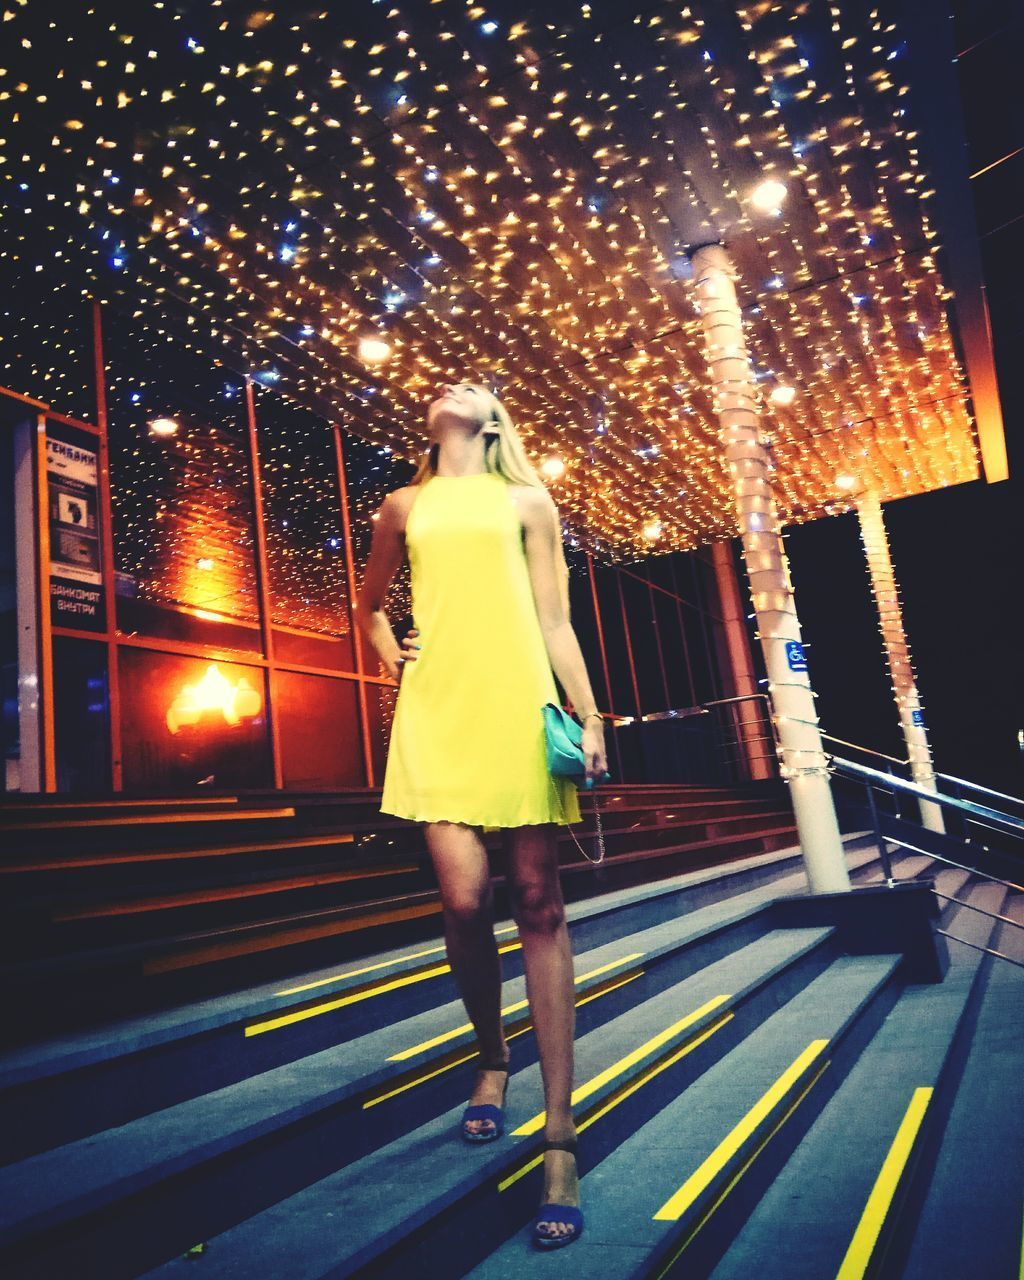 full length, illuminated, night, real people, rear view, one person, lifestyles, standing, built structure, leisure activity, yellow, outdoors, young adult, building exterior, architecture, city, women, young women, sky, adult, people